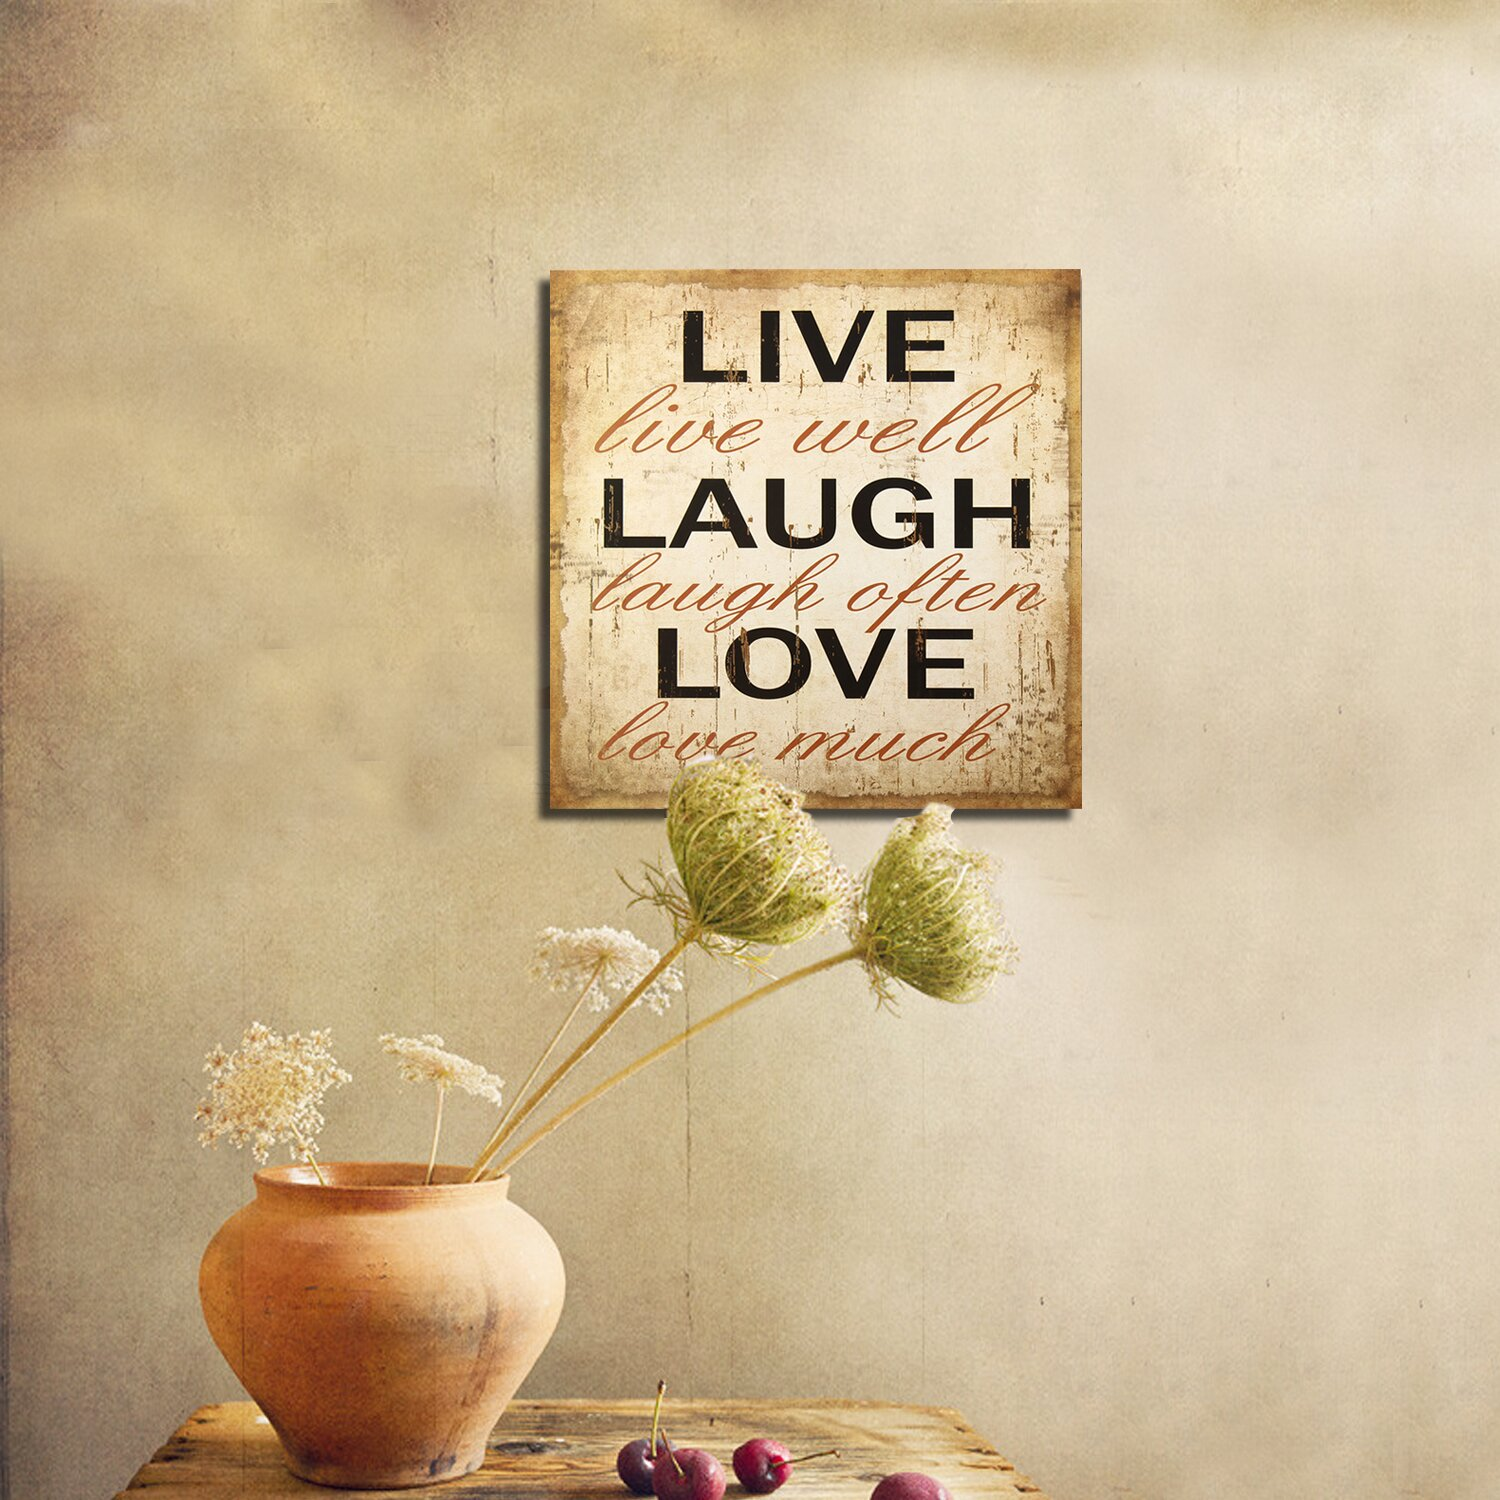 Live laugh love wall decor wayfair for Live laugh love wall art